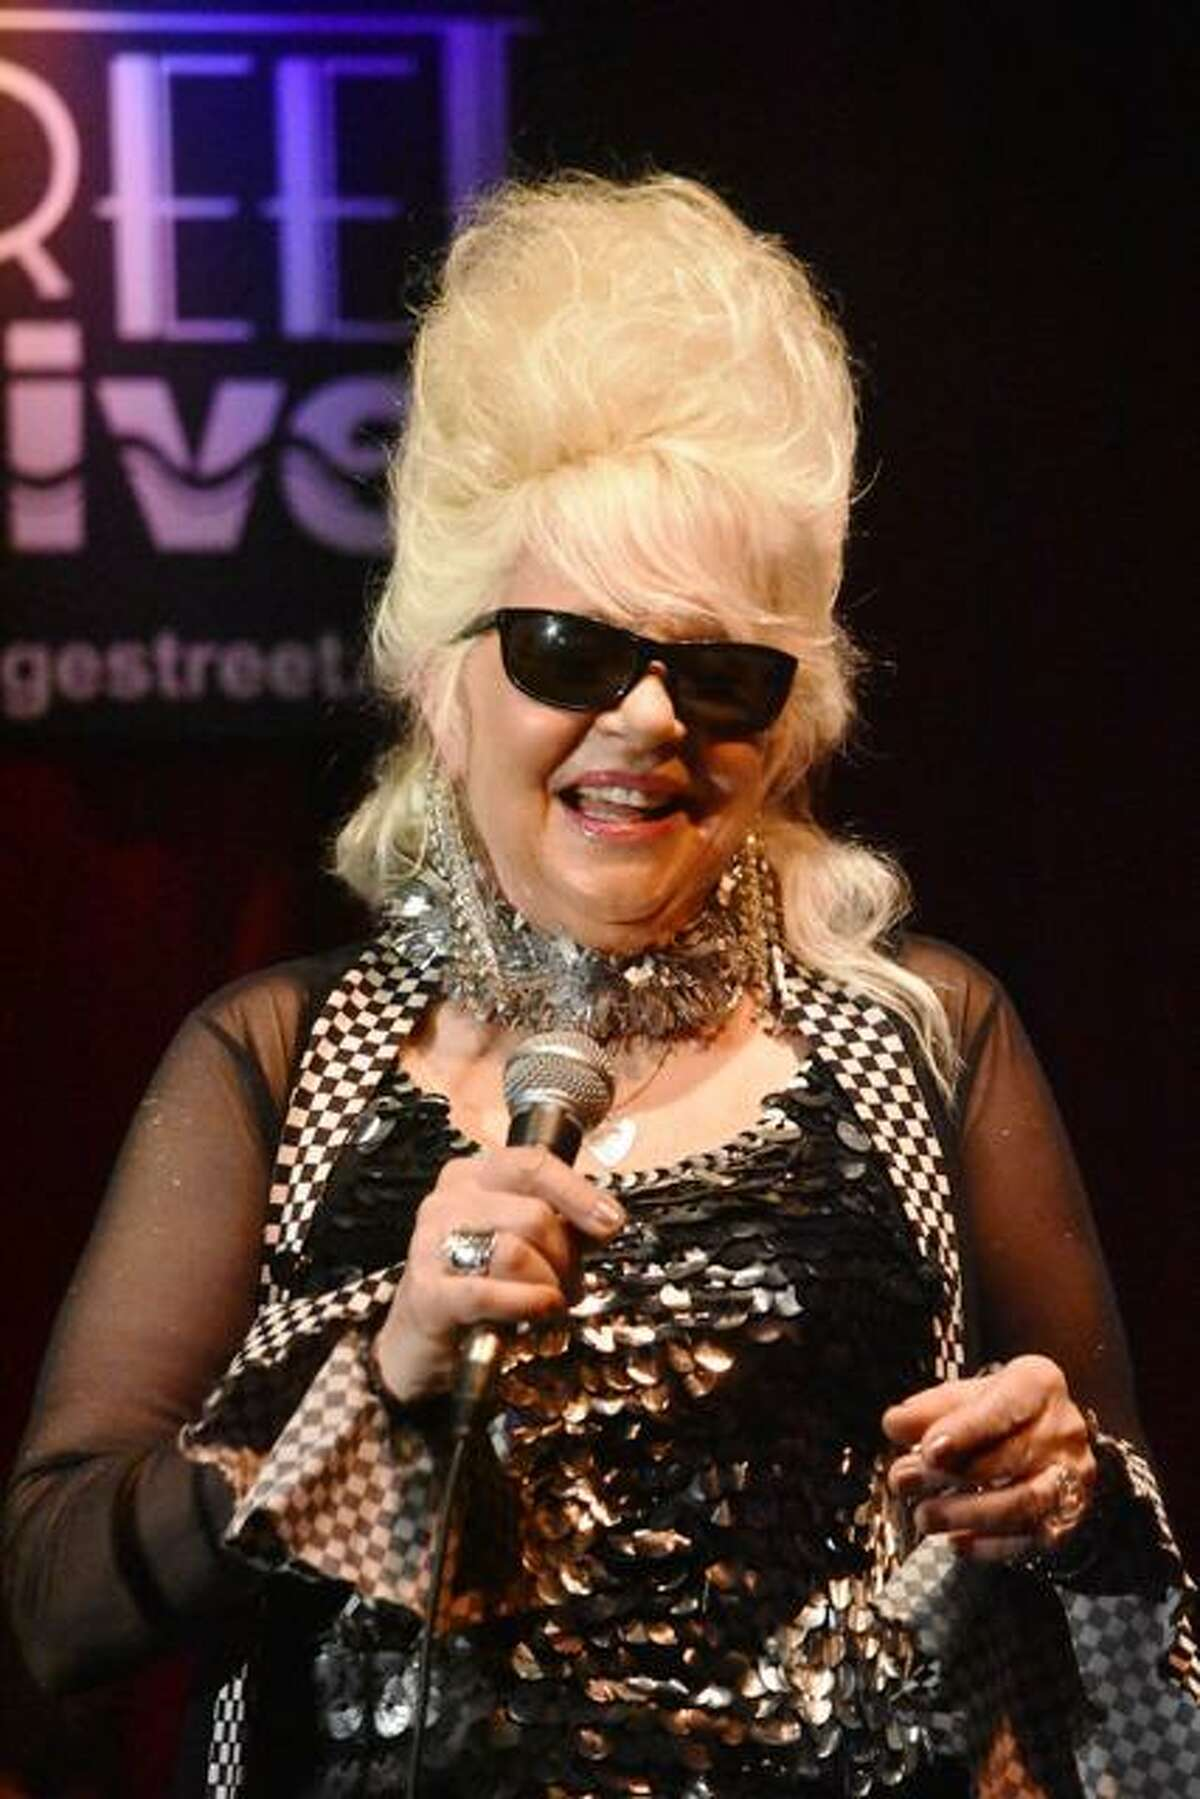 """Rocker Christine Ohlman, """"The Beehive Queen"""" is performing at the Chirp Concert Series in Ridgefield Aug. 6."""